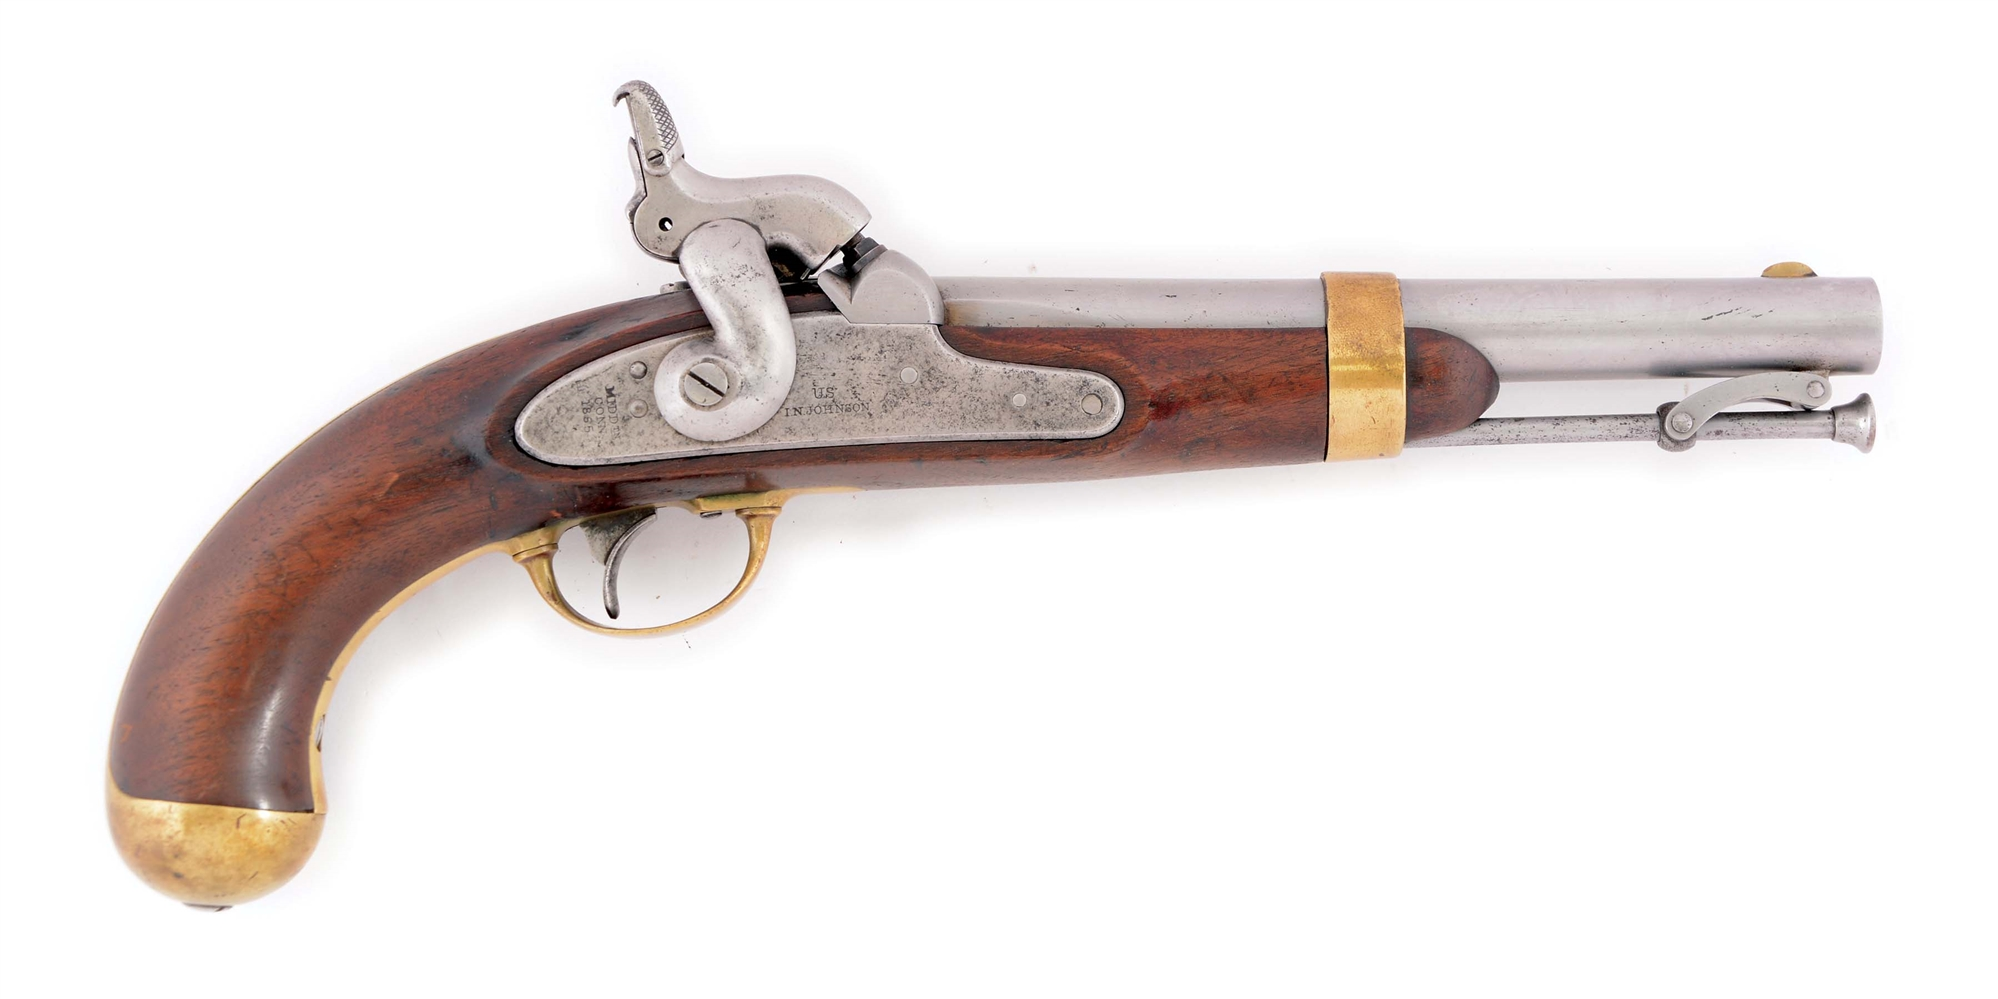 (A) A RARE AND UNUSUAL SPRINGFIELD ARMORY ALTERATION OF AN 1842 SINGLE SHOT PERCUSSION MARTIAL PISTOL TO AUTOMATIC PRIMING.